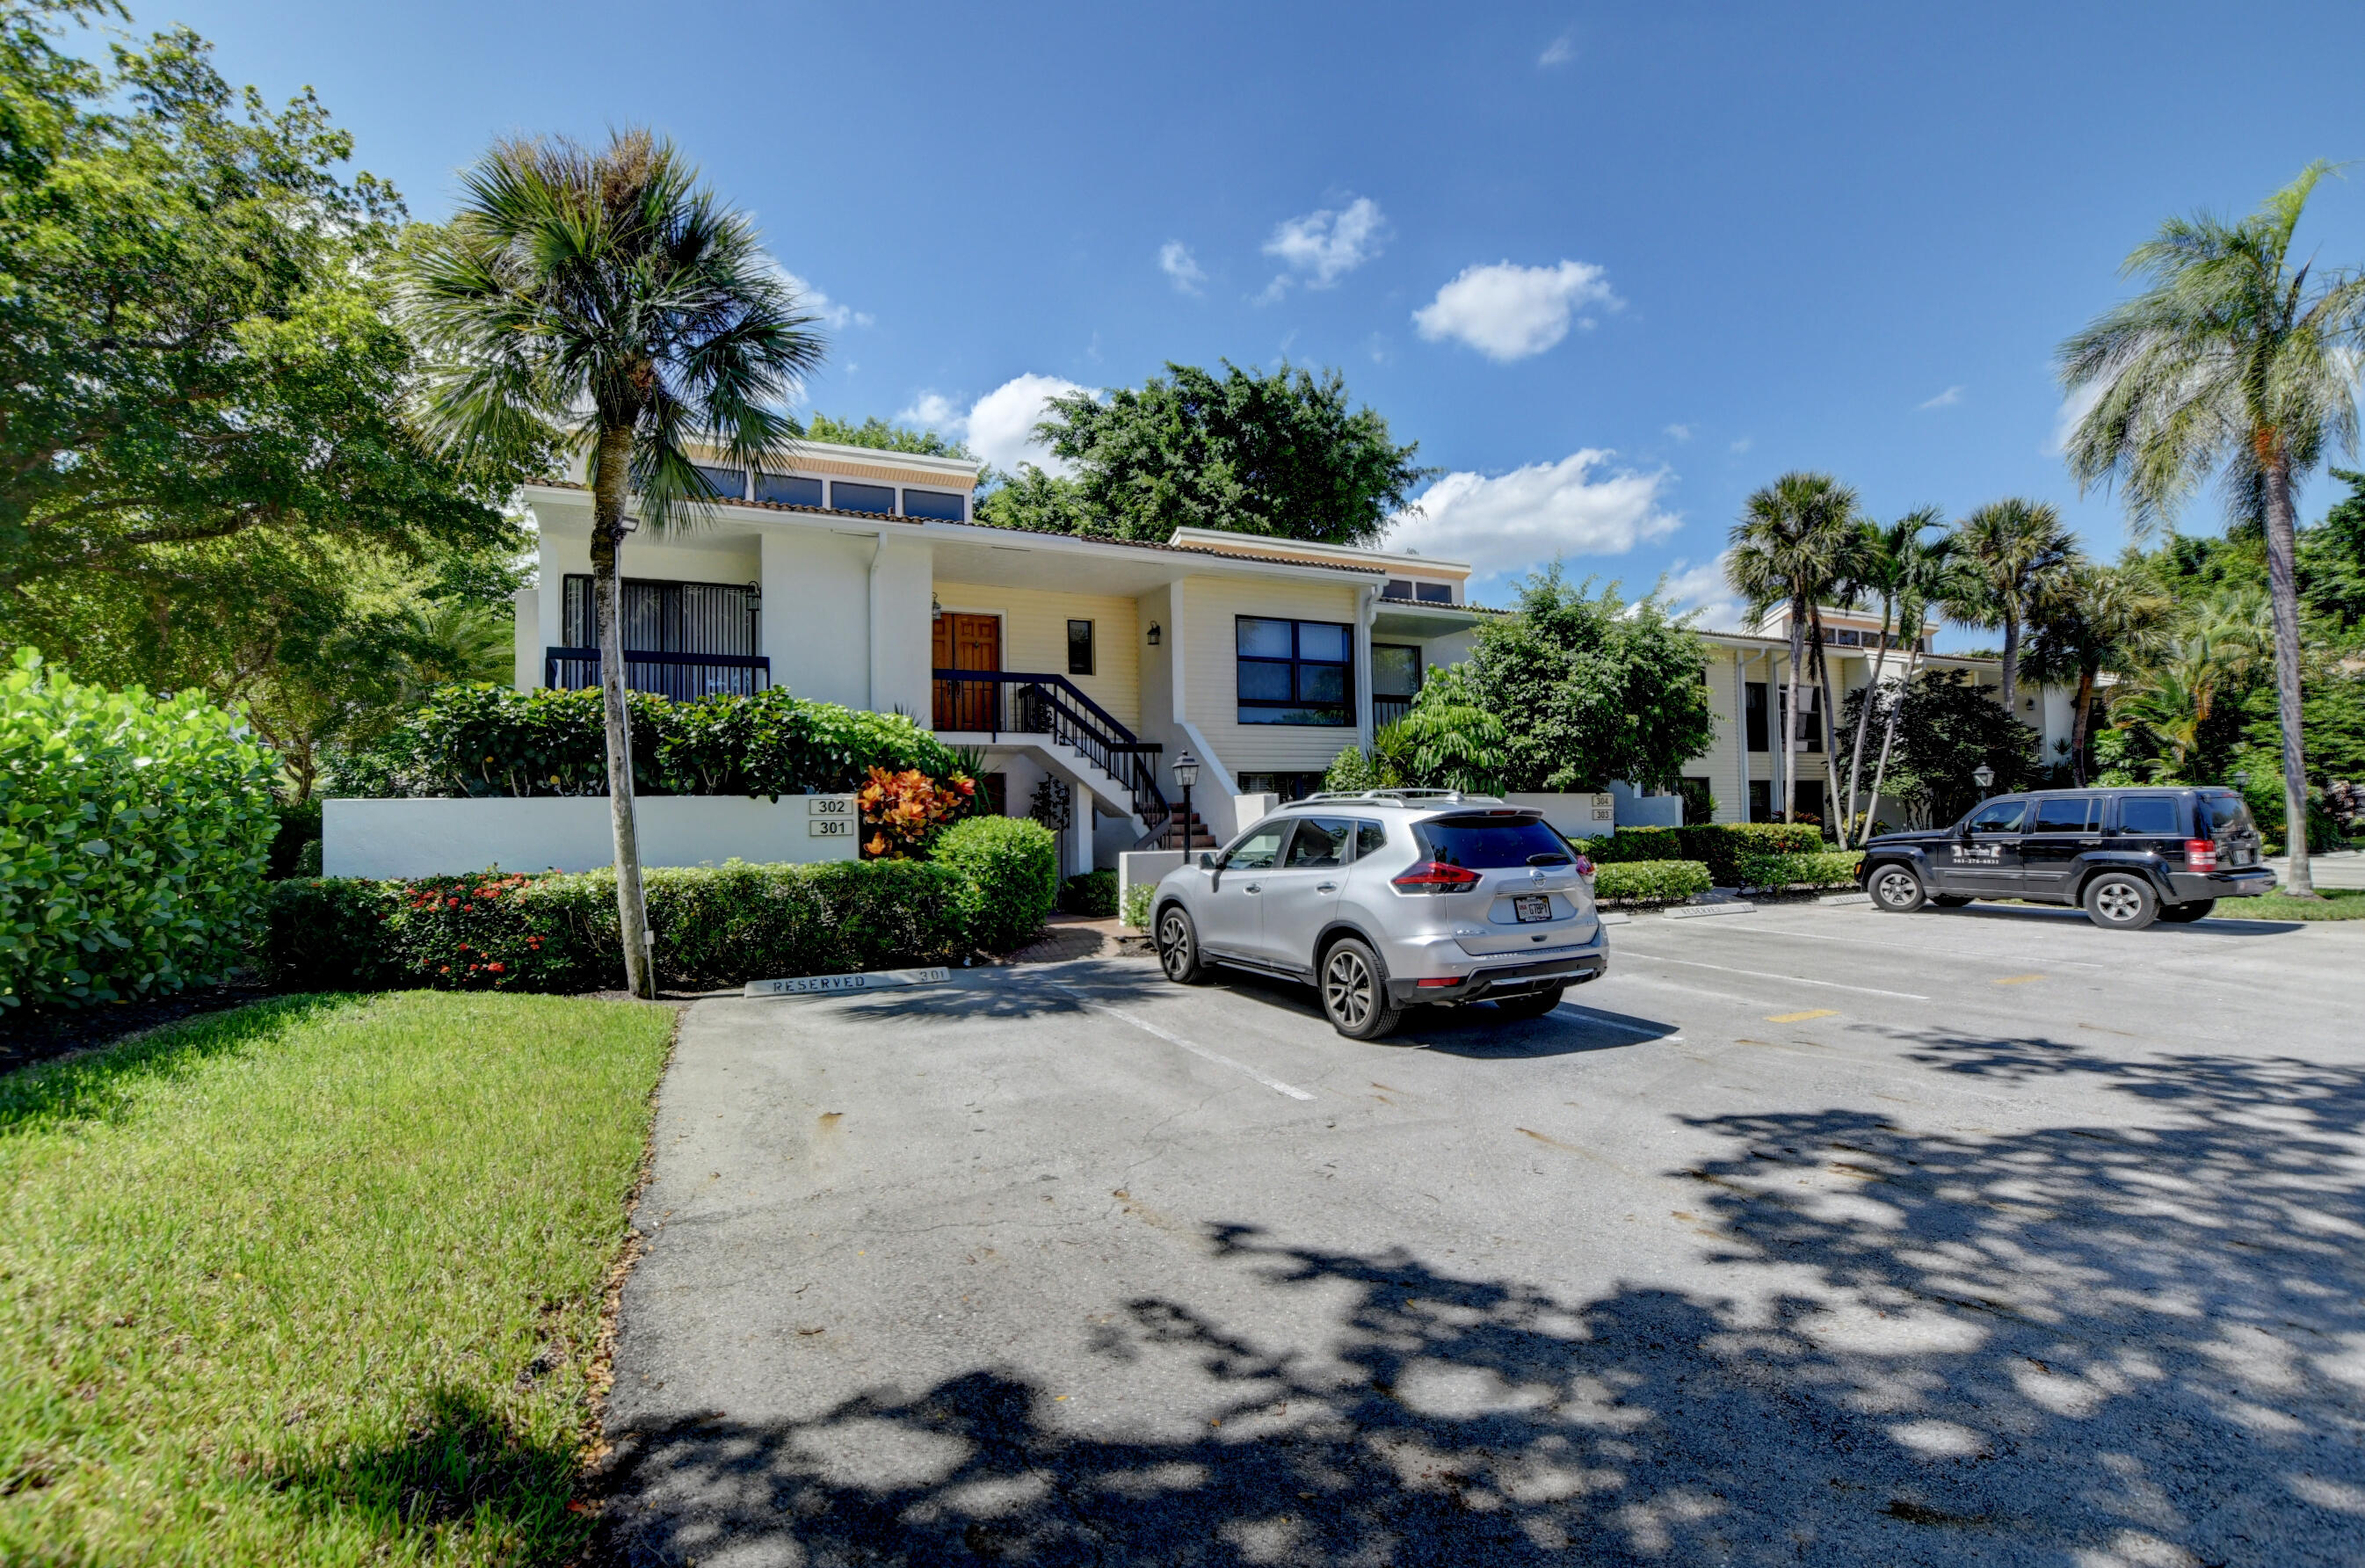 6878  Willow Wood Drive 301 For Sale 10748004, FL